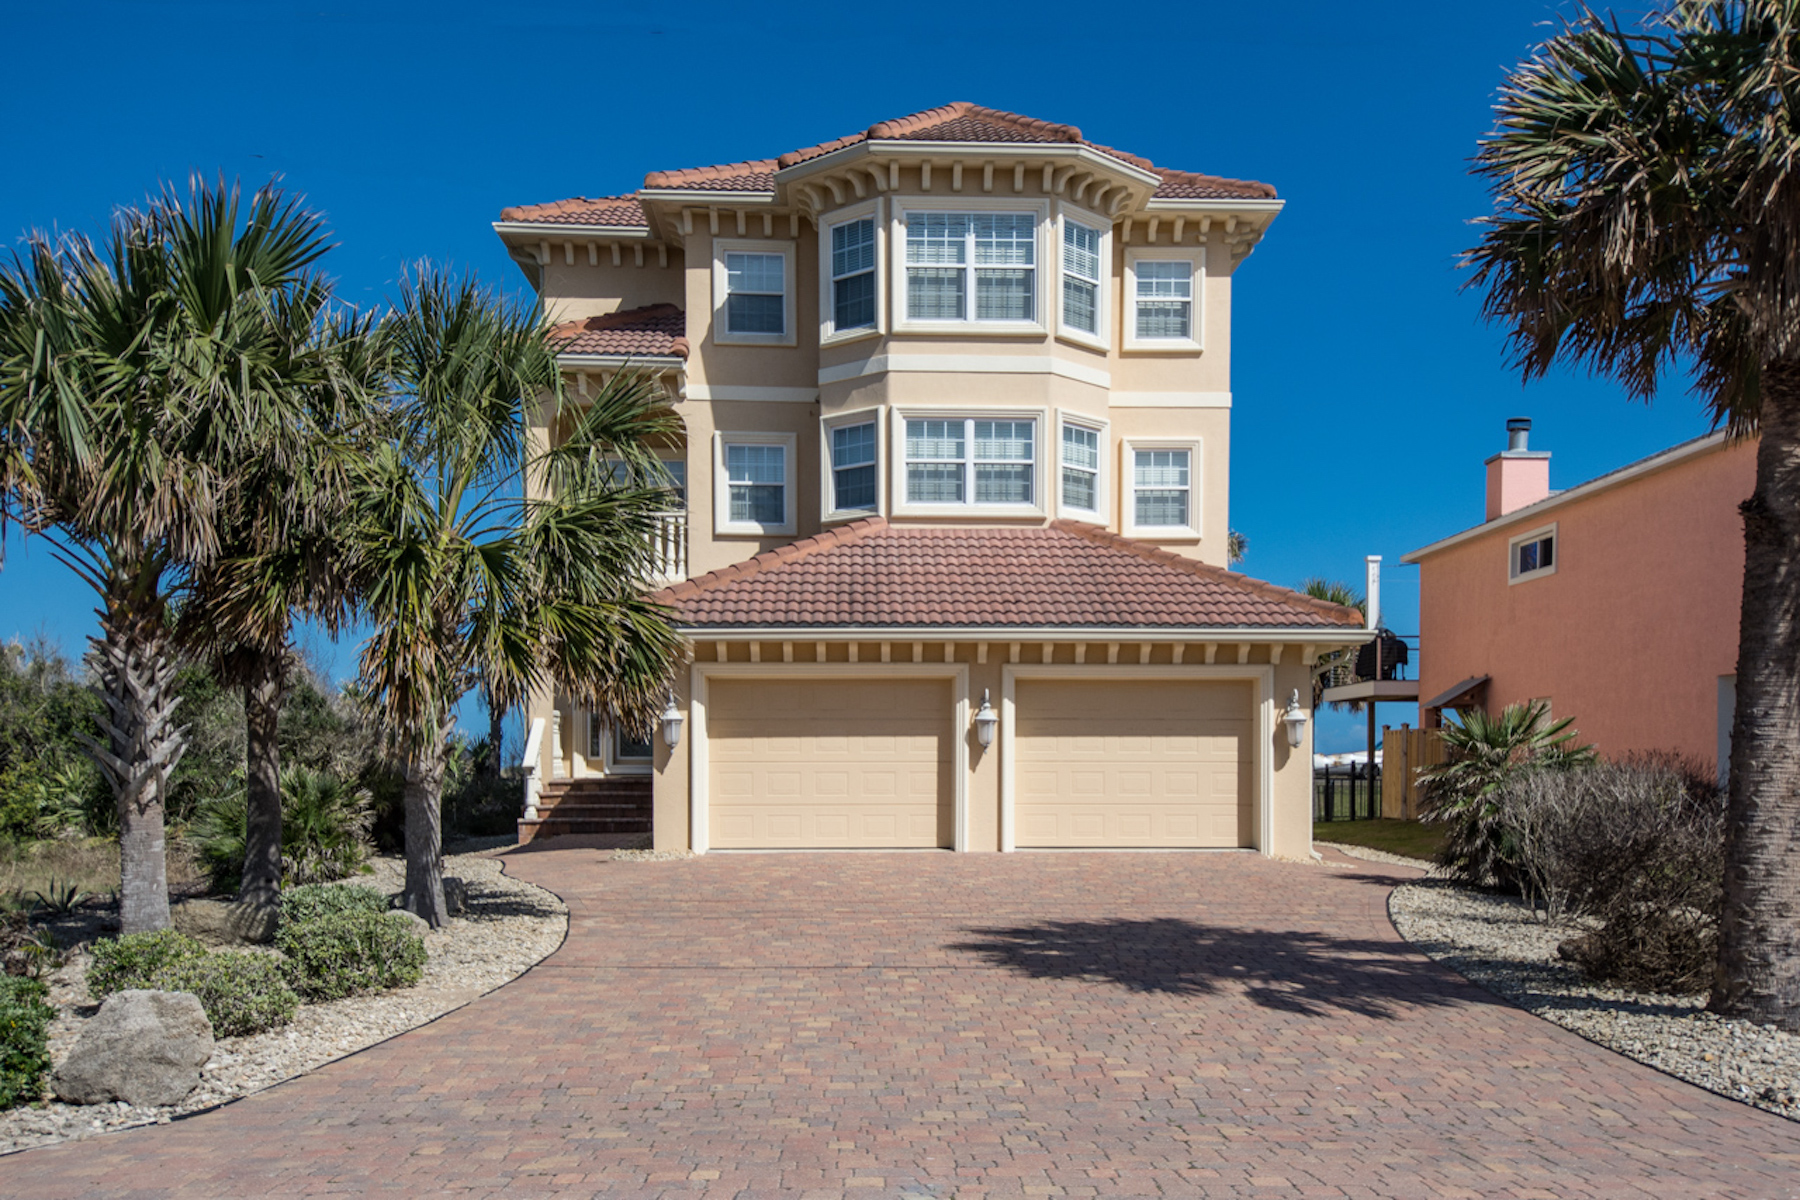 single family homes for Active at 1316 Ocean Shore Boulevard North 1316 Ocean Shore Blvd North Flagler Beach, Florida 32136 United States